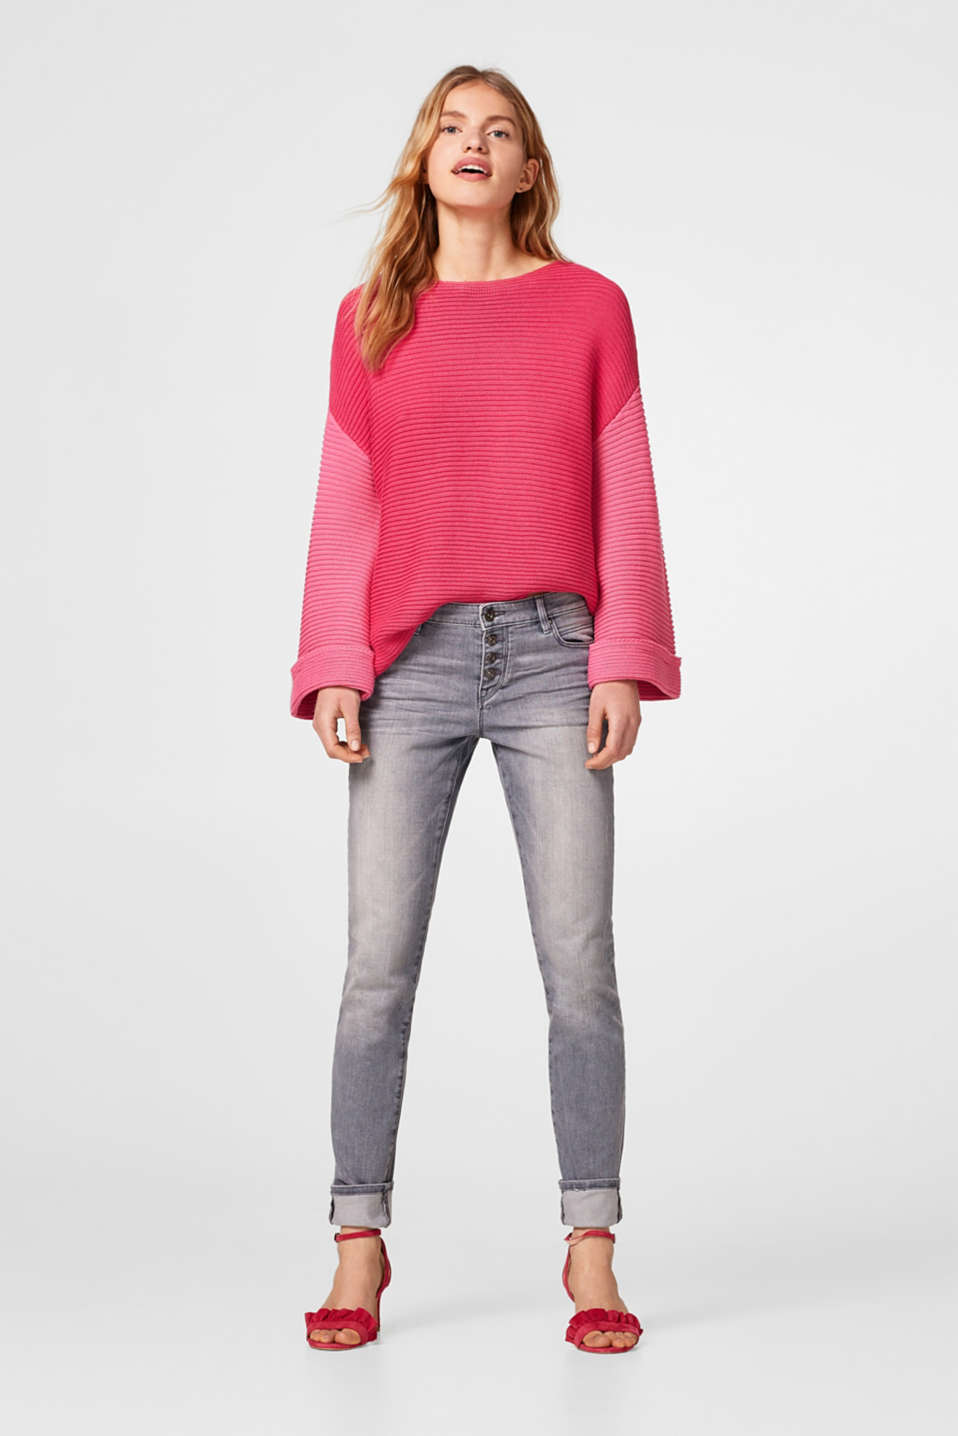 Grey stretch jeans with a button placket